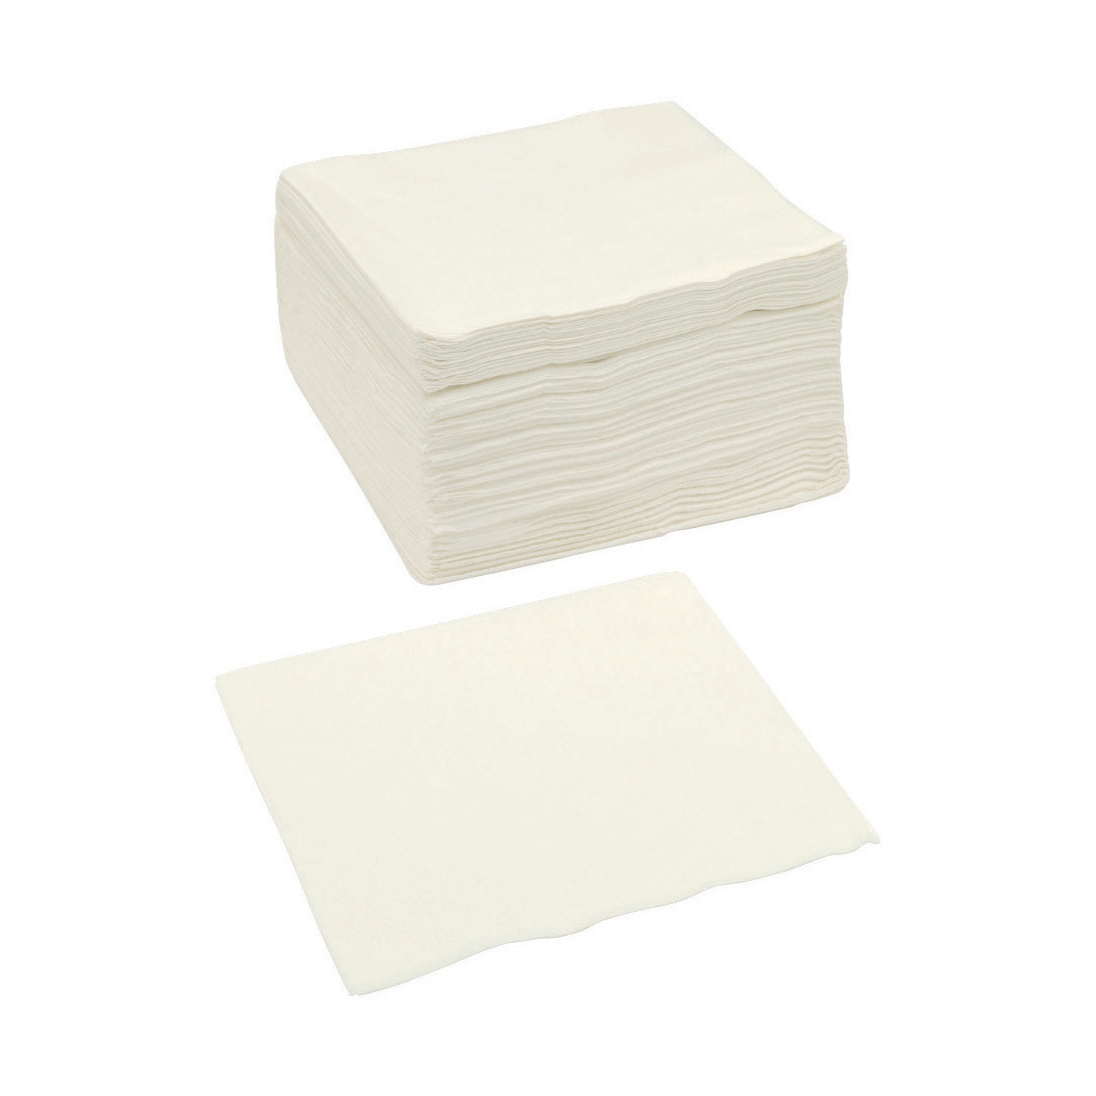 Serviettes / Napkins Paper Napkins Square 2 Ply 400x400mm White Pack 250